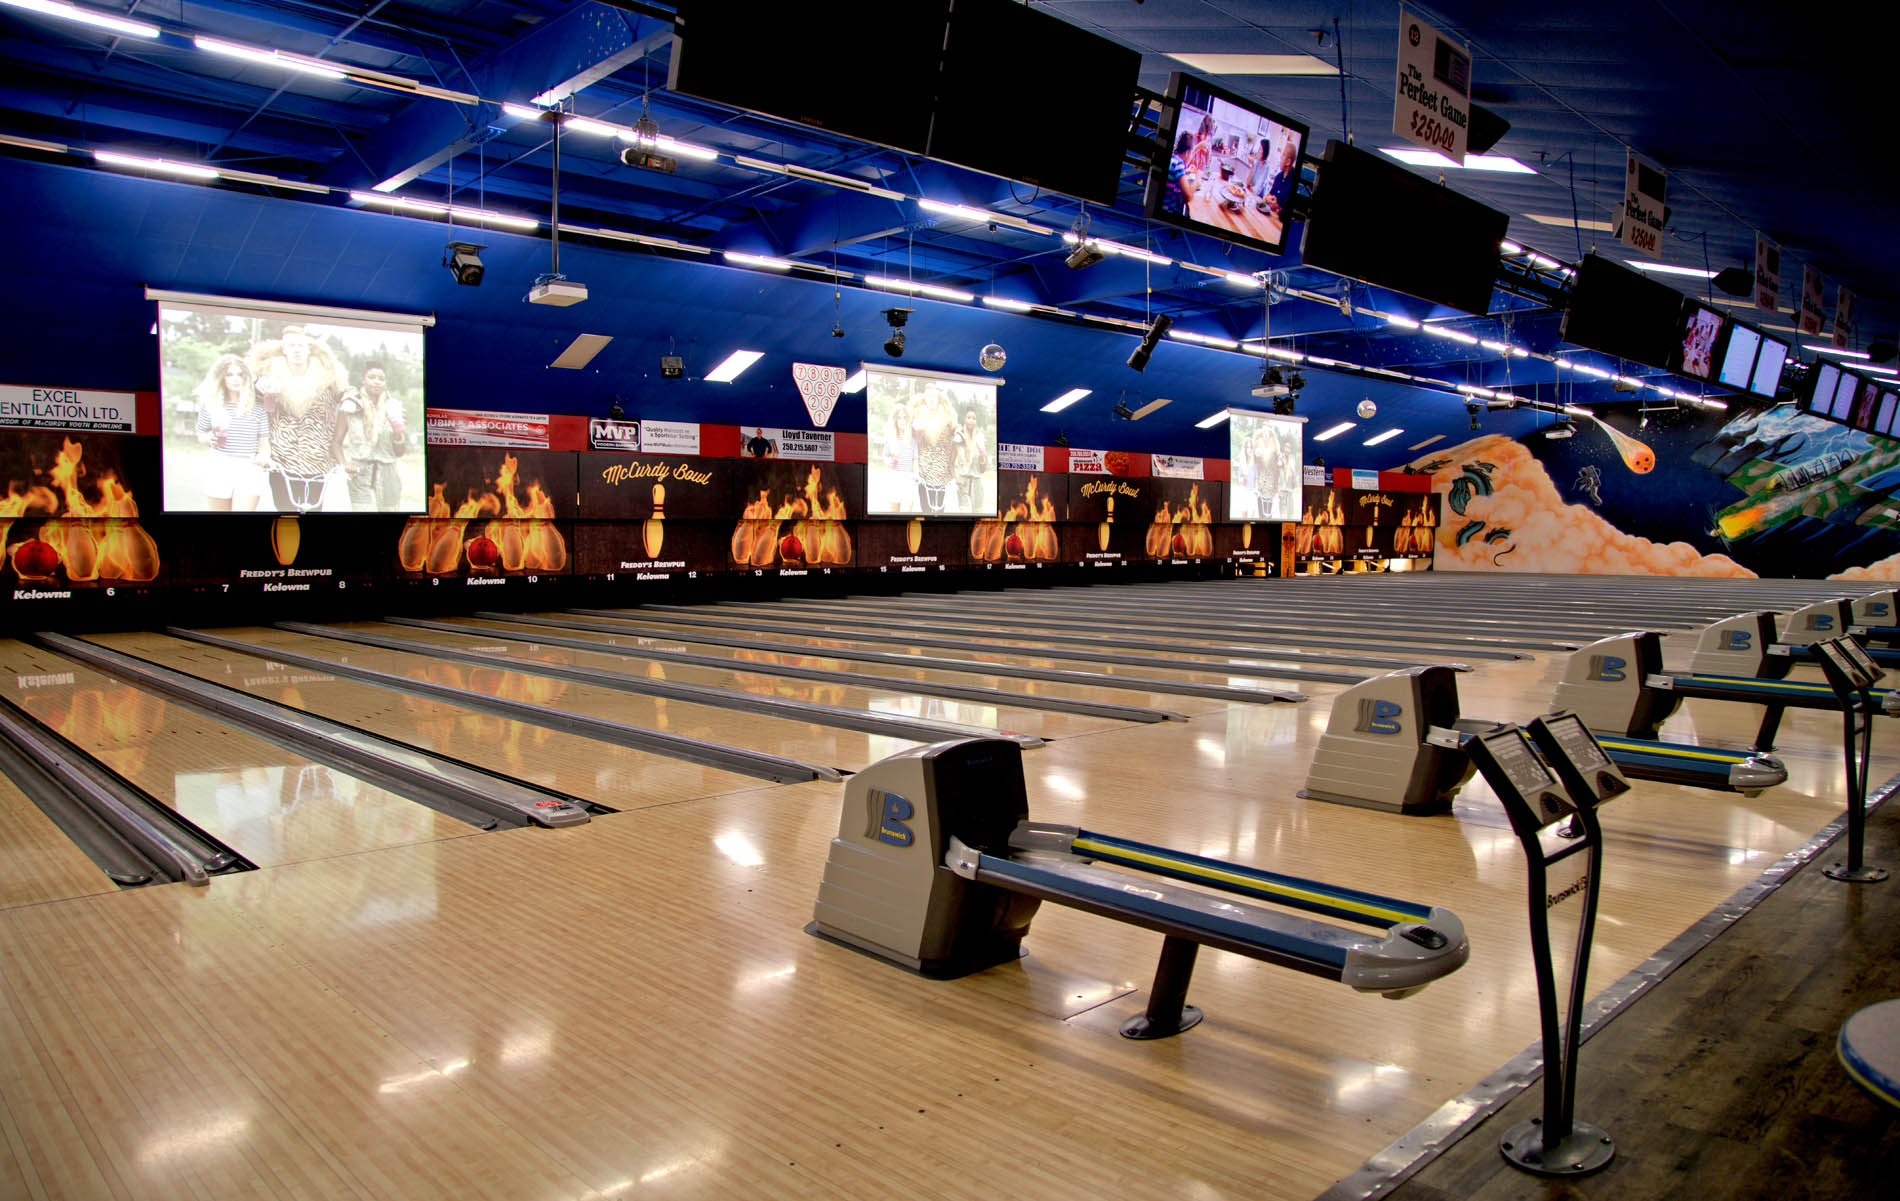 New Projectors Up The Cool Factor for Cosmic Bowling